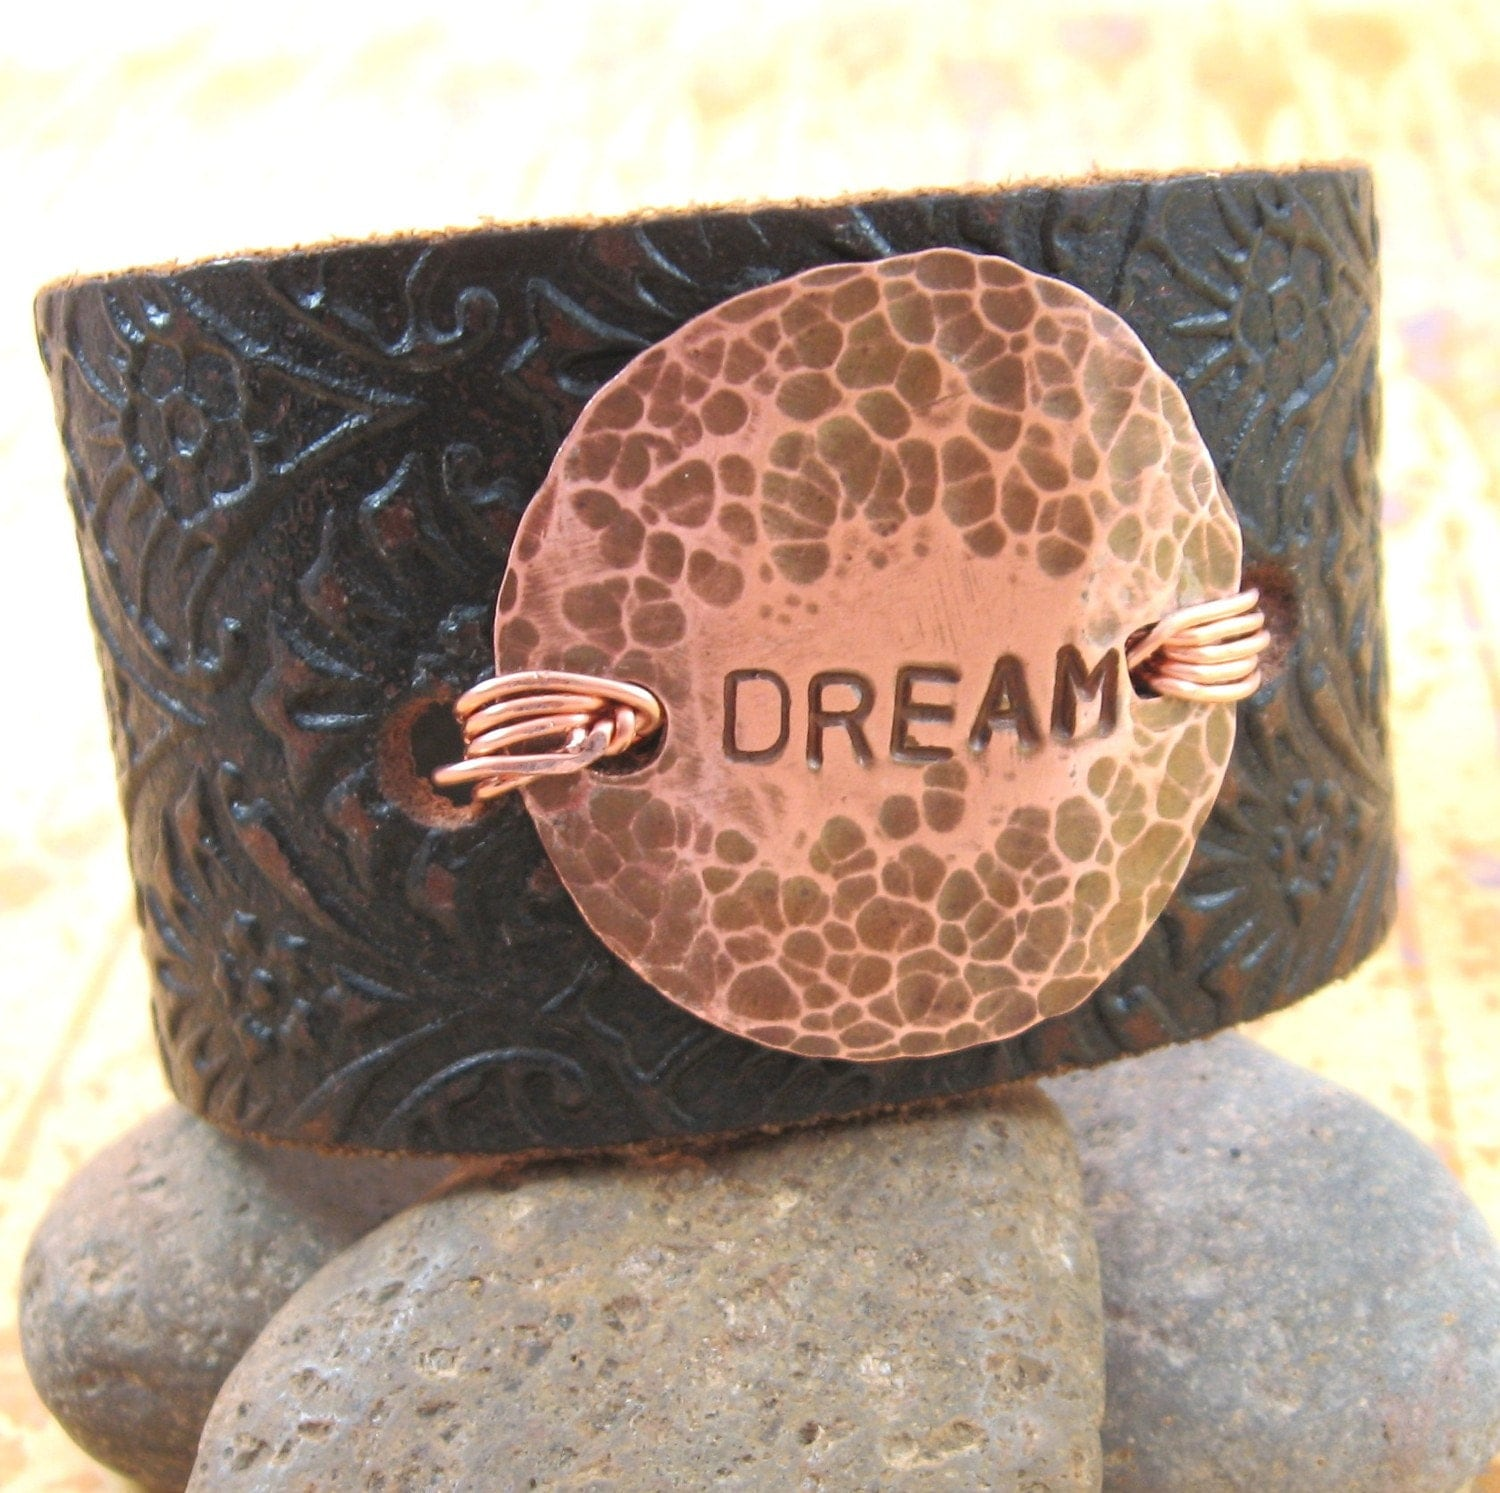 DREAM - Leather Wrist Cuff  with Hammered Copper Medallion - Upcycled - Medium